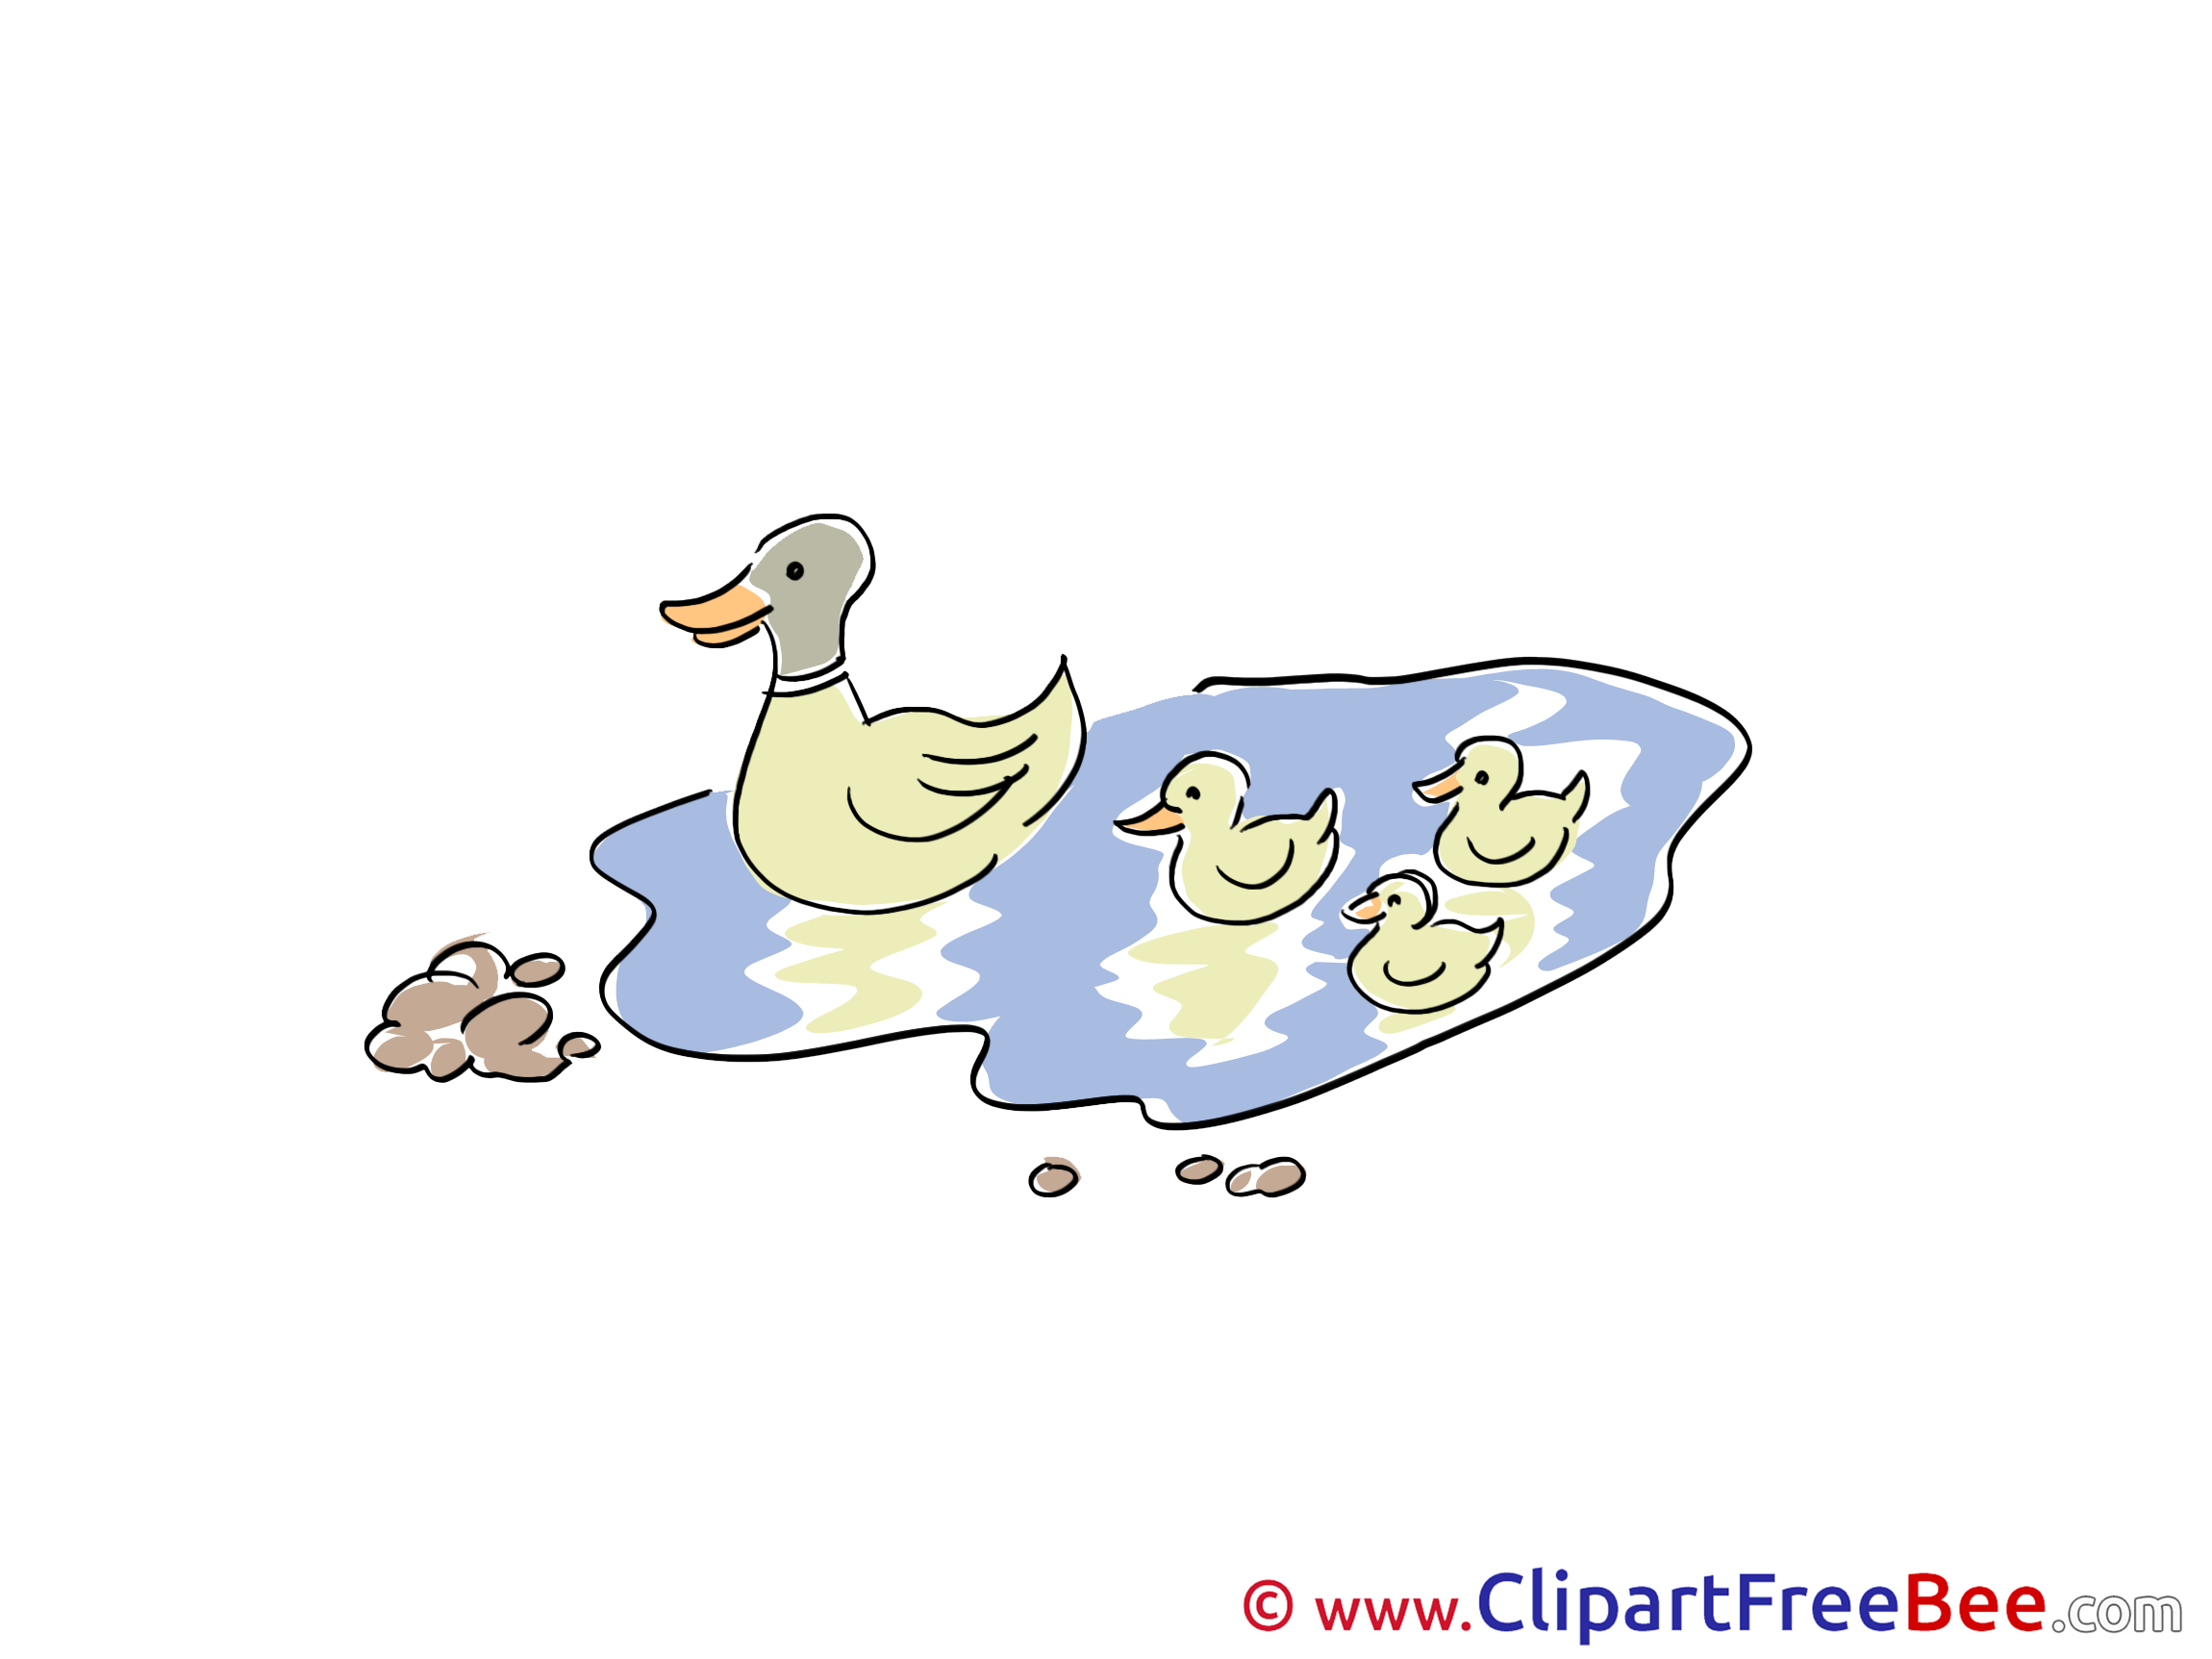 Lake Ducks printable Illustrations for free